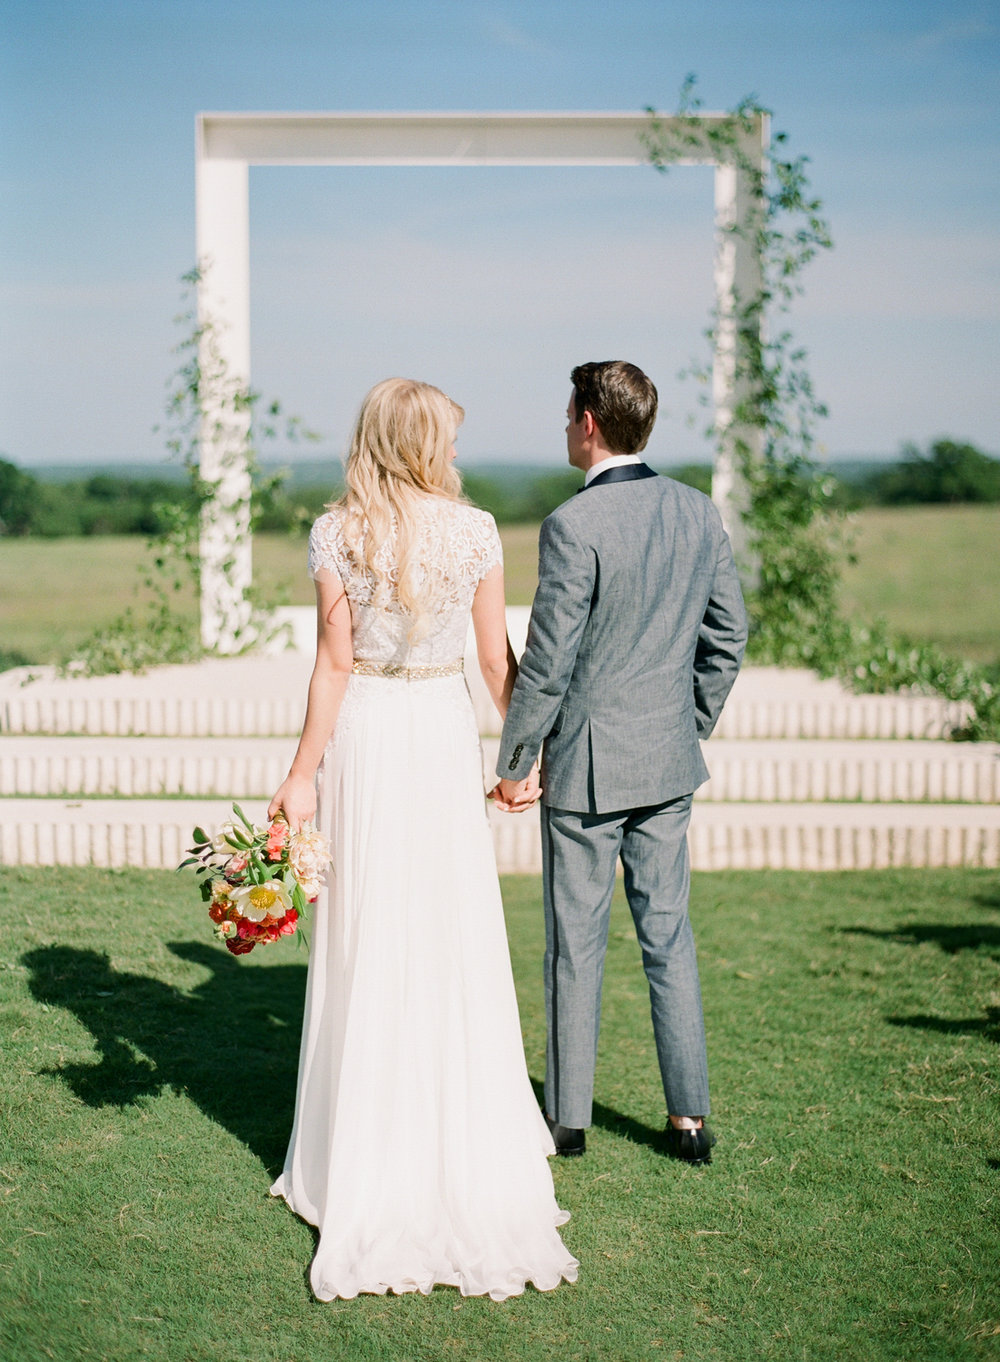 PROSPECT_HOUSE_WEDDING_AUSTIN_TX_BY_MATTHEW_MOORE_PHOTOGRAPHY_00111.jpg